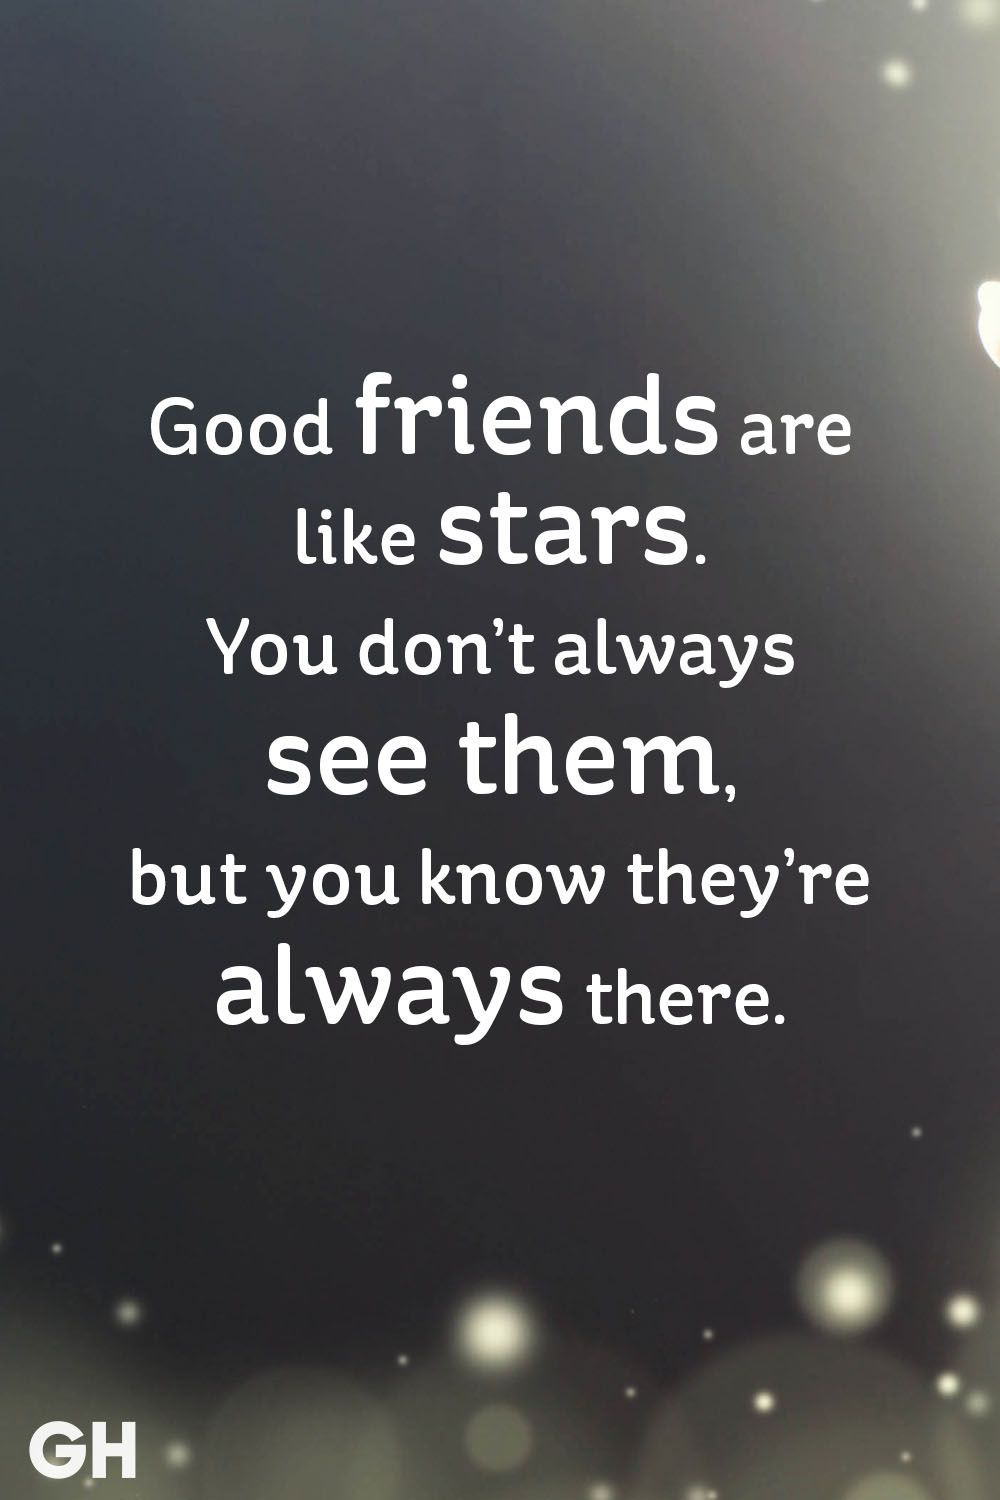 40 Friendship Quotes To Share With Your Besties Sentimental Quotes Short Friendship Quotes Friends Quotes